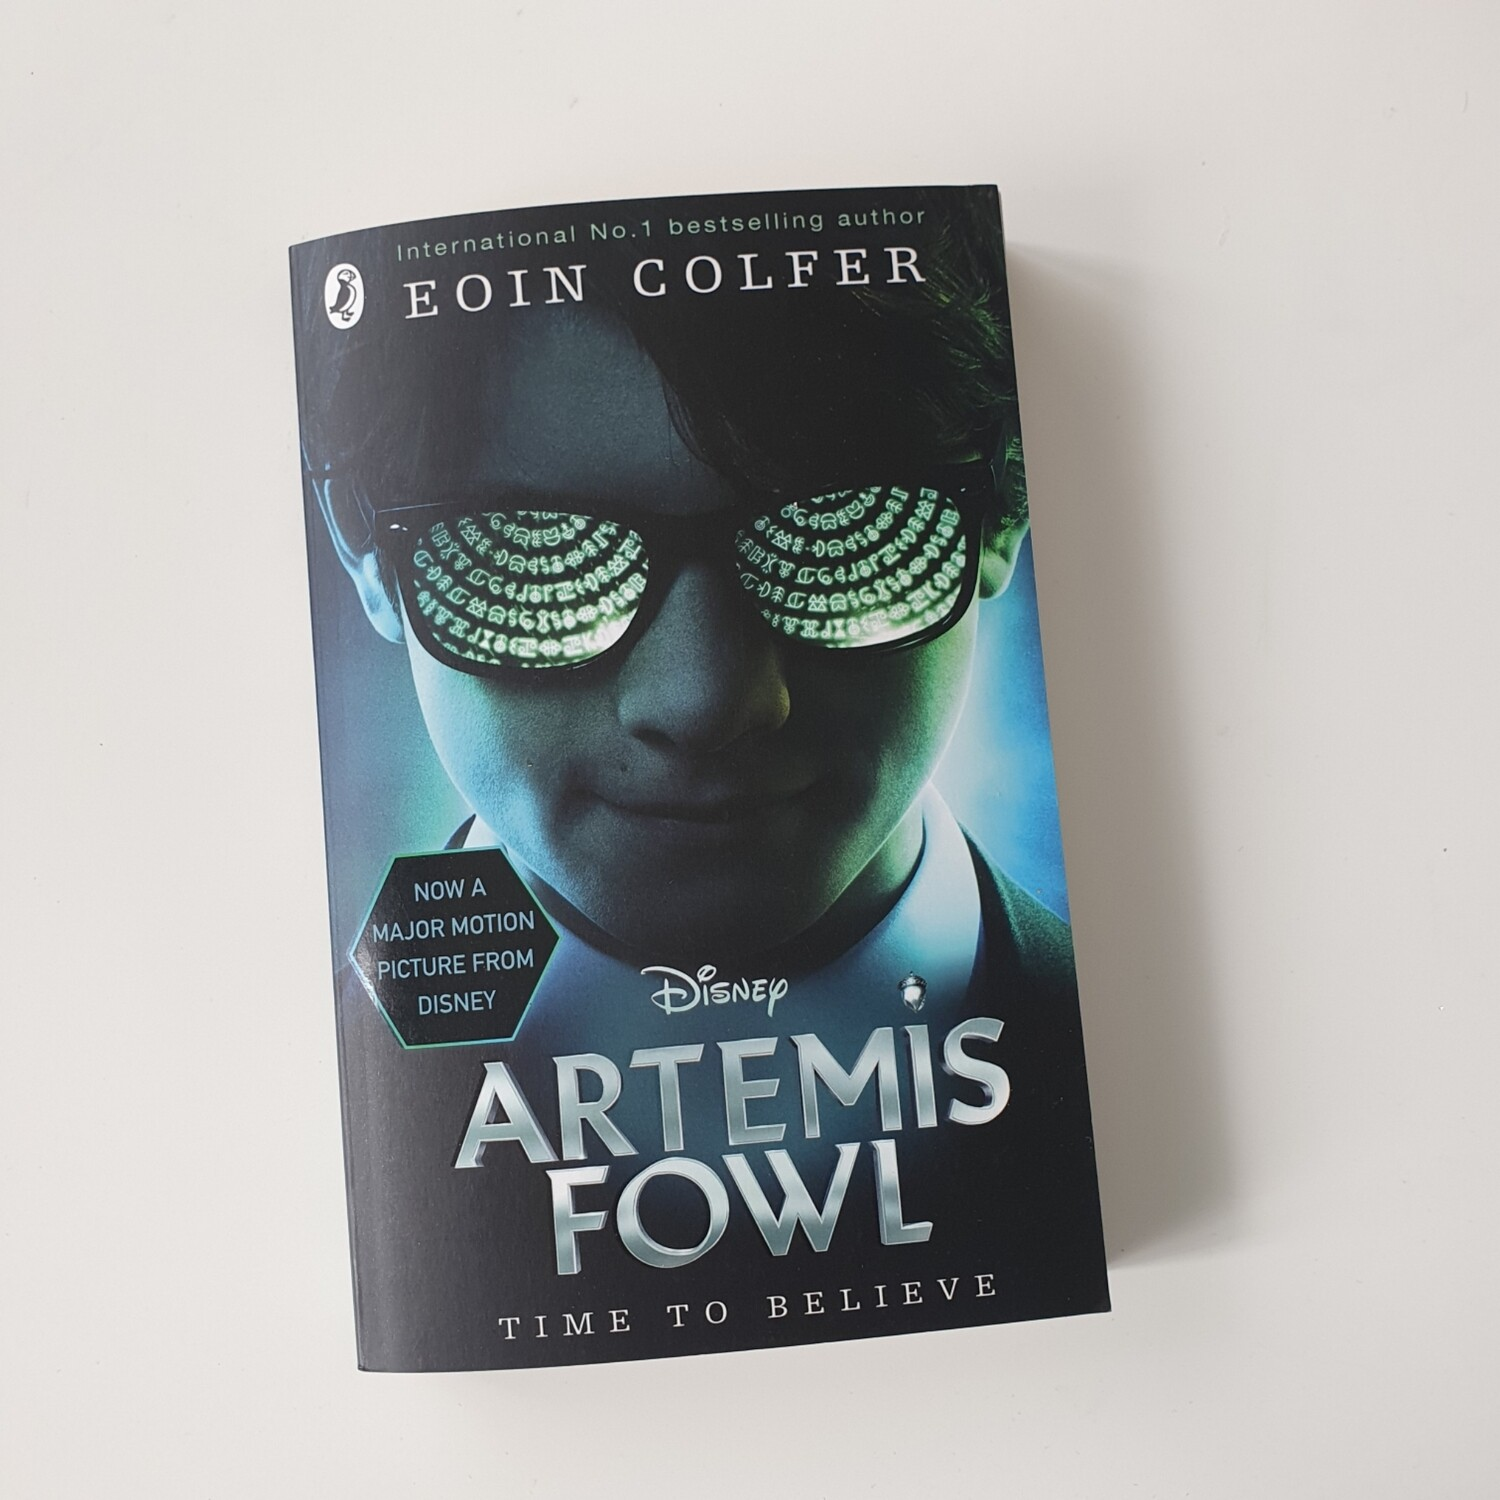 Artemis Fowl Notebook - made from a paperback book